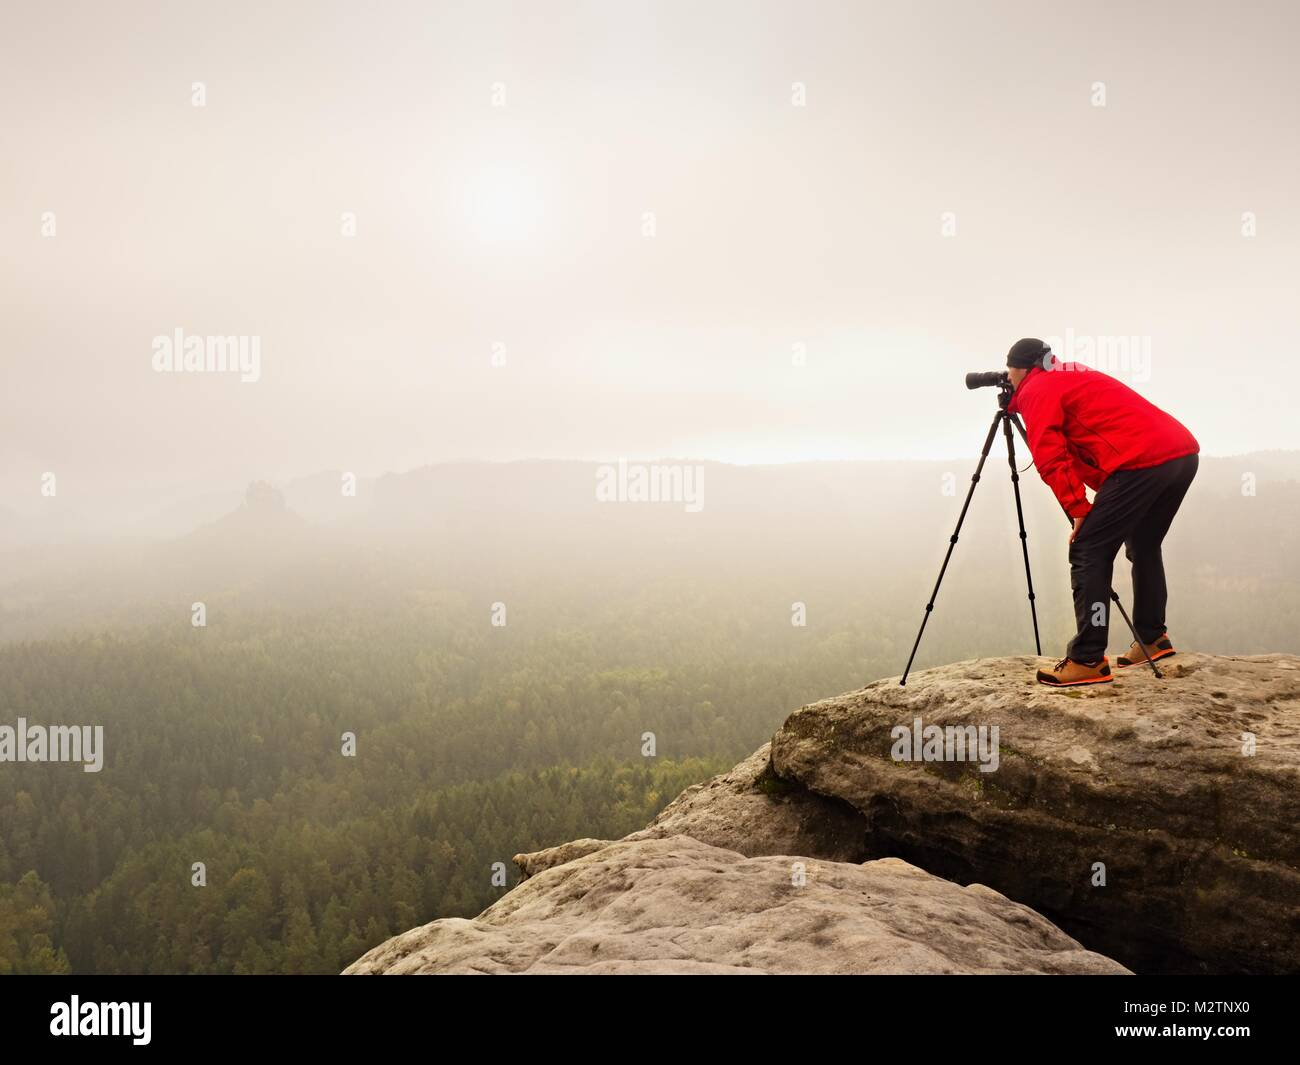 Hiker with camera on tripod takes picture from rocky summit. Alone photographer at edge photograph misty landscape, - Stock Image